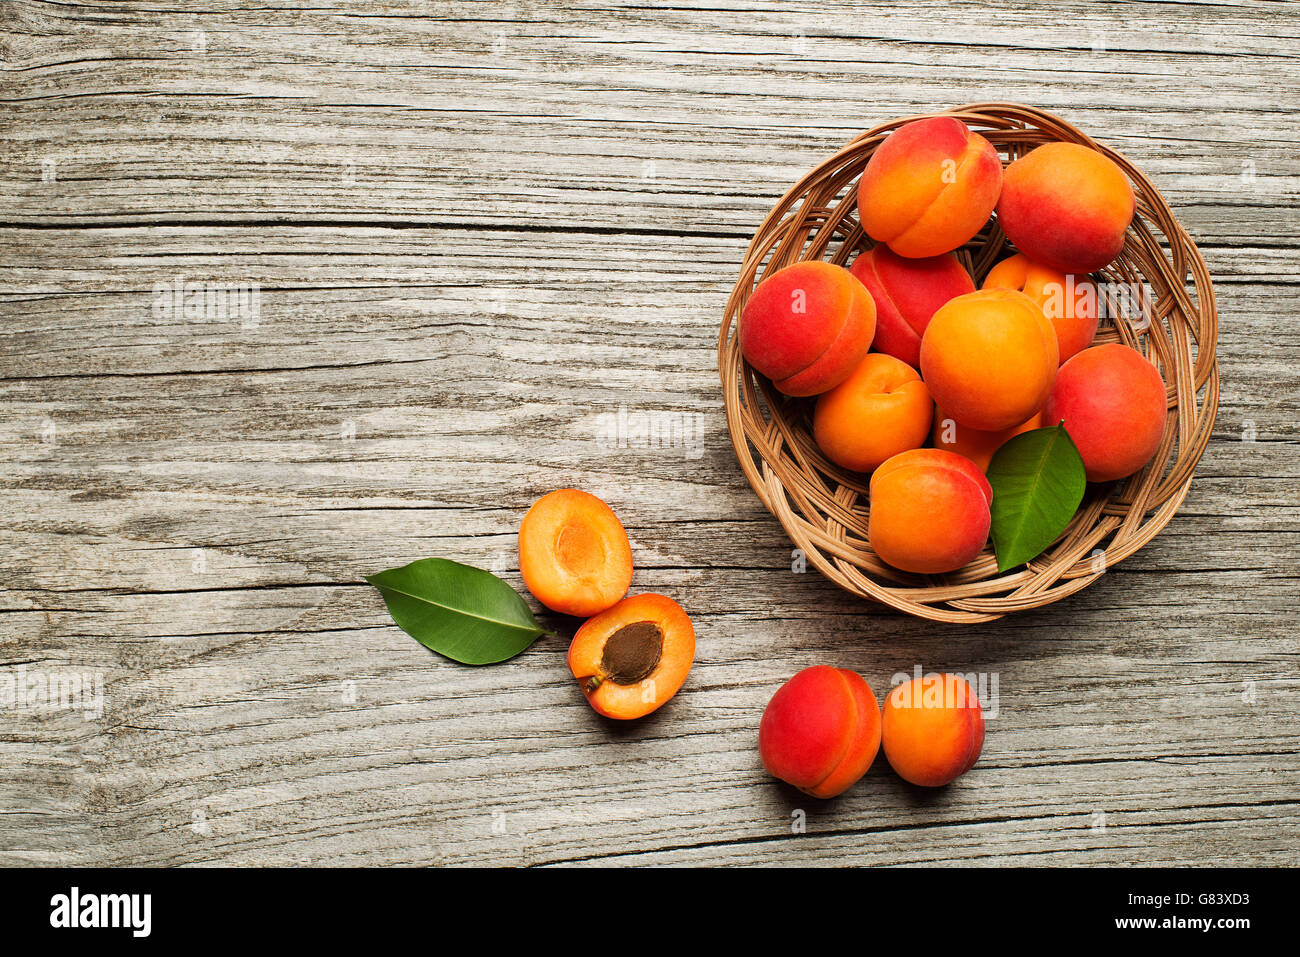 Fresh cut apricot fruits on wooden background - Stock Image